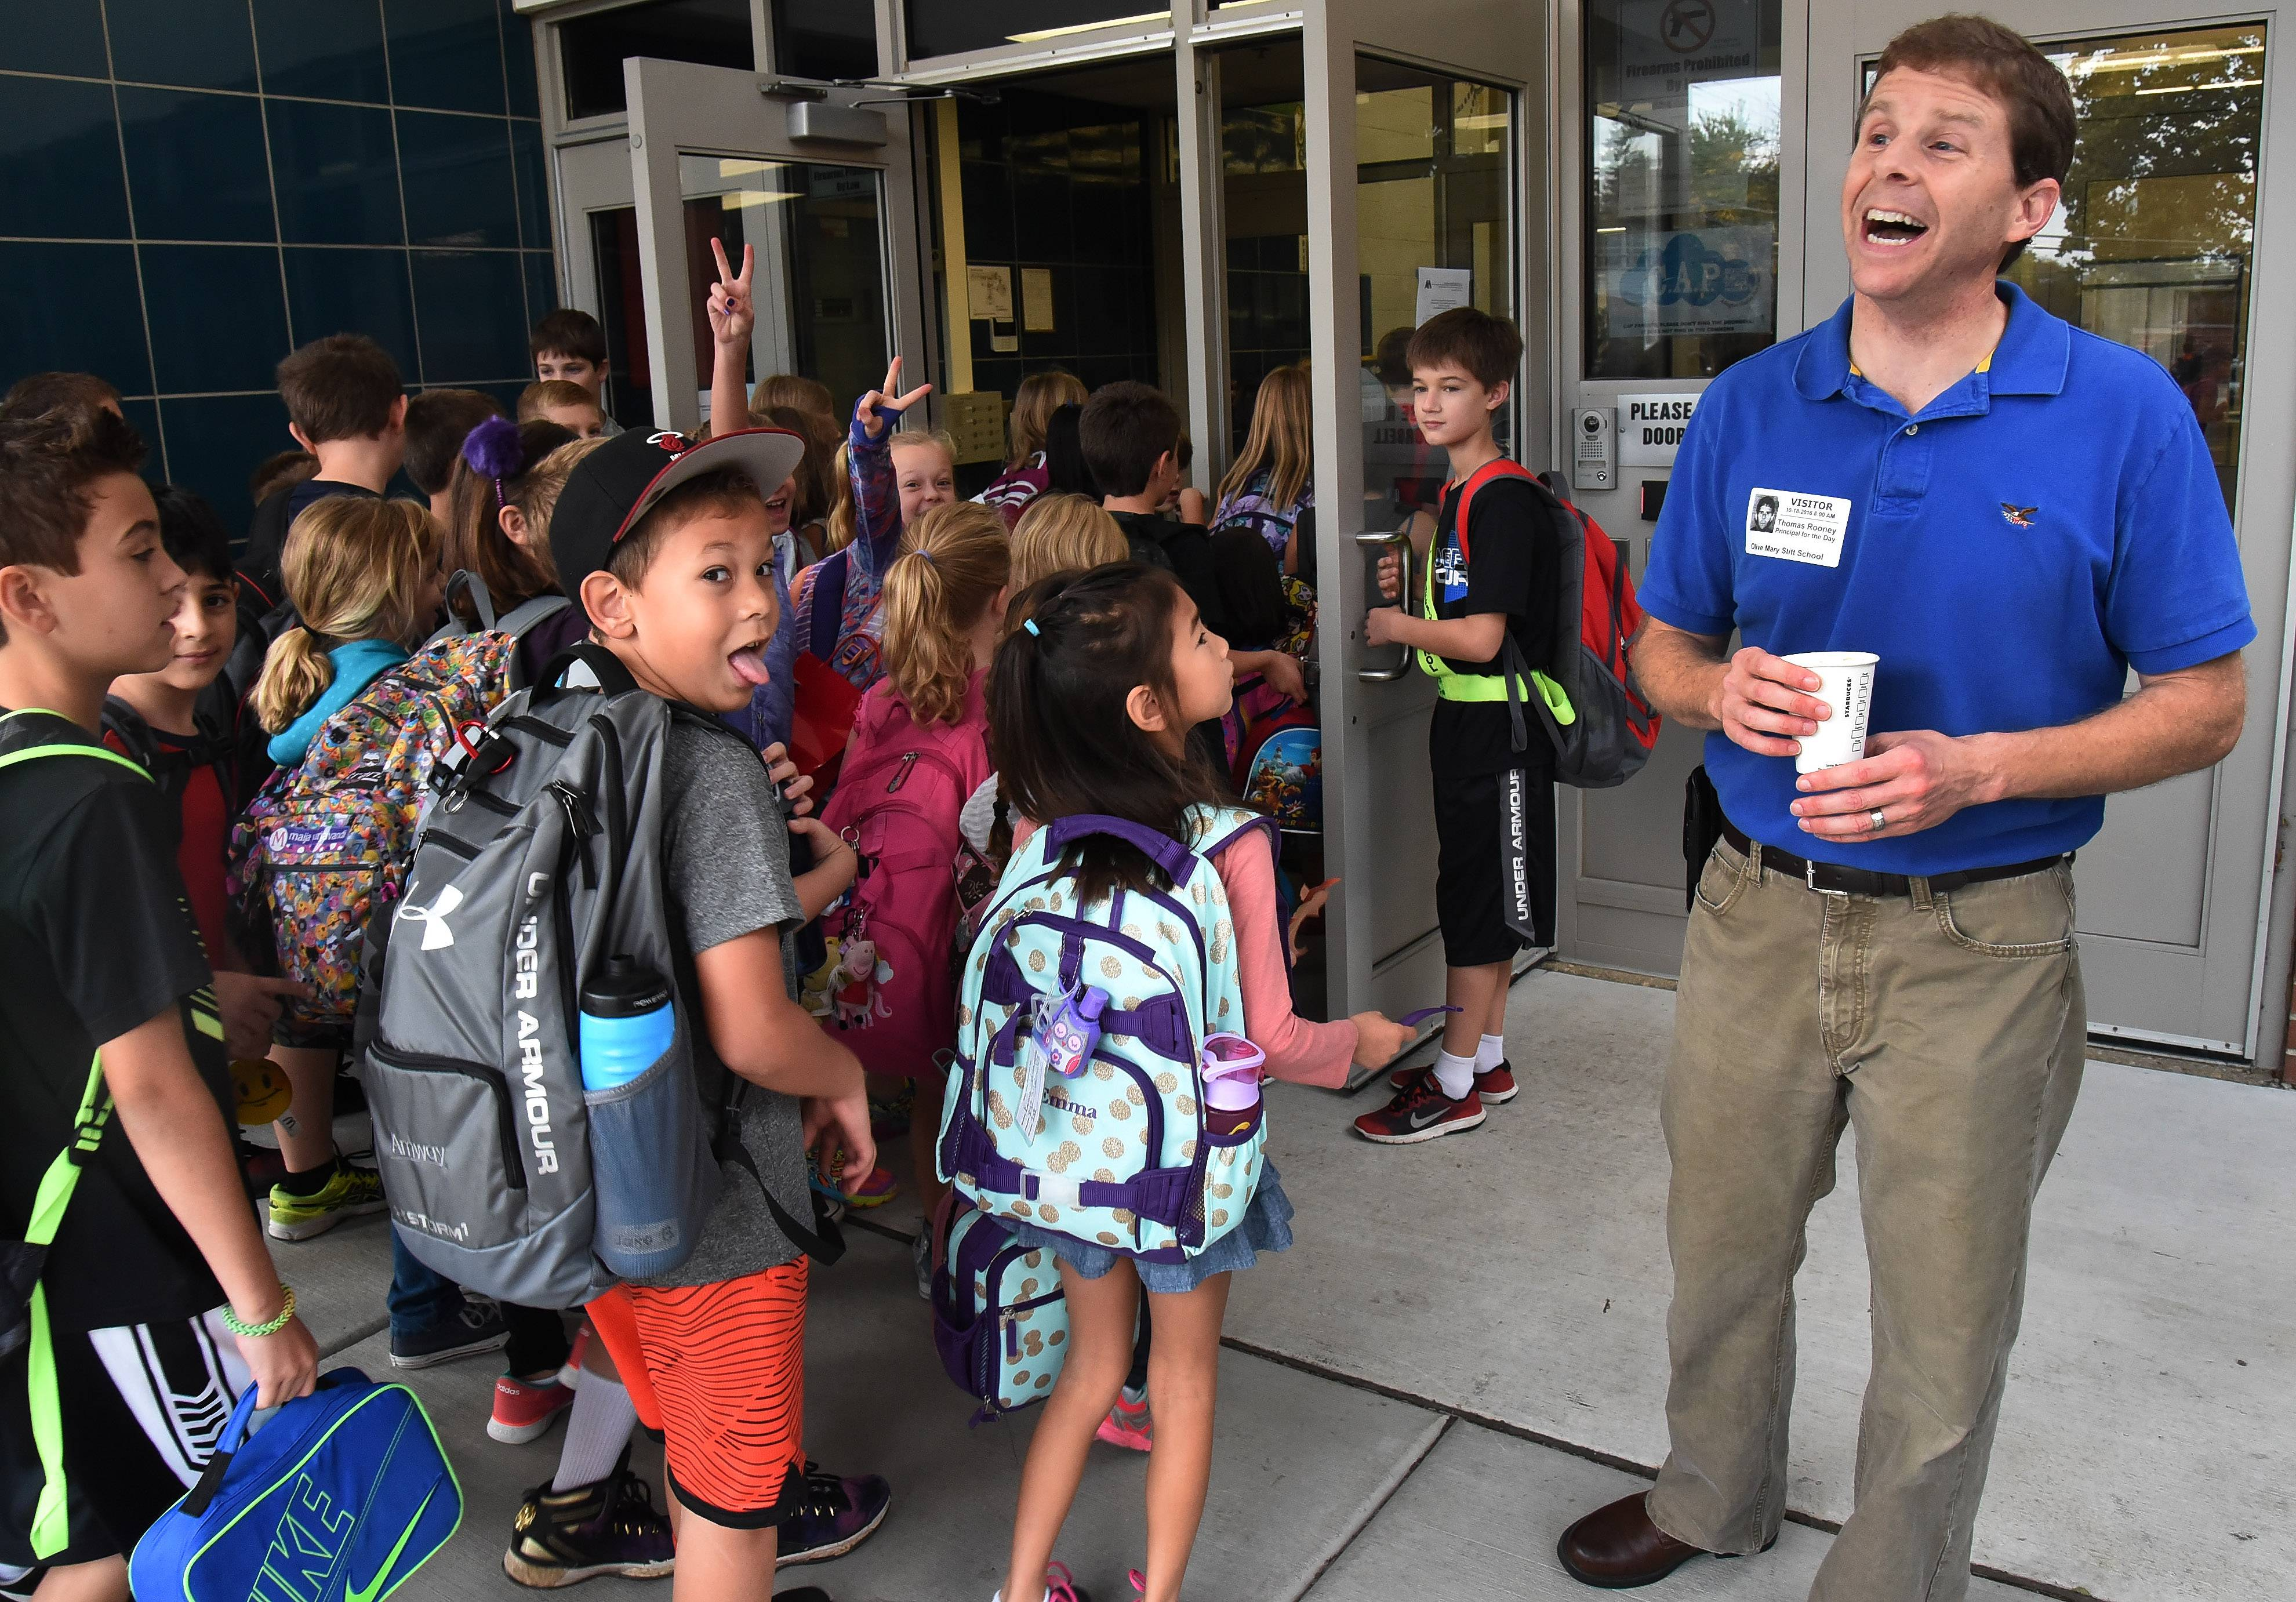 State Sen. Tom Rooney welcomes students arriving Tuesday morning at Olive-Mary Stitt Elementary School in Arlington Heights.